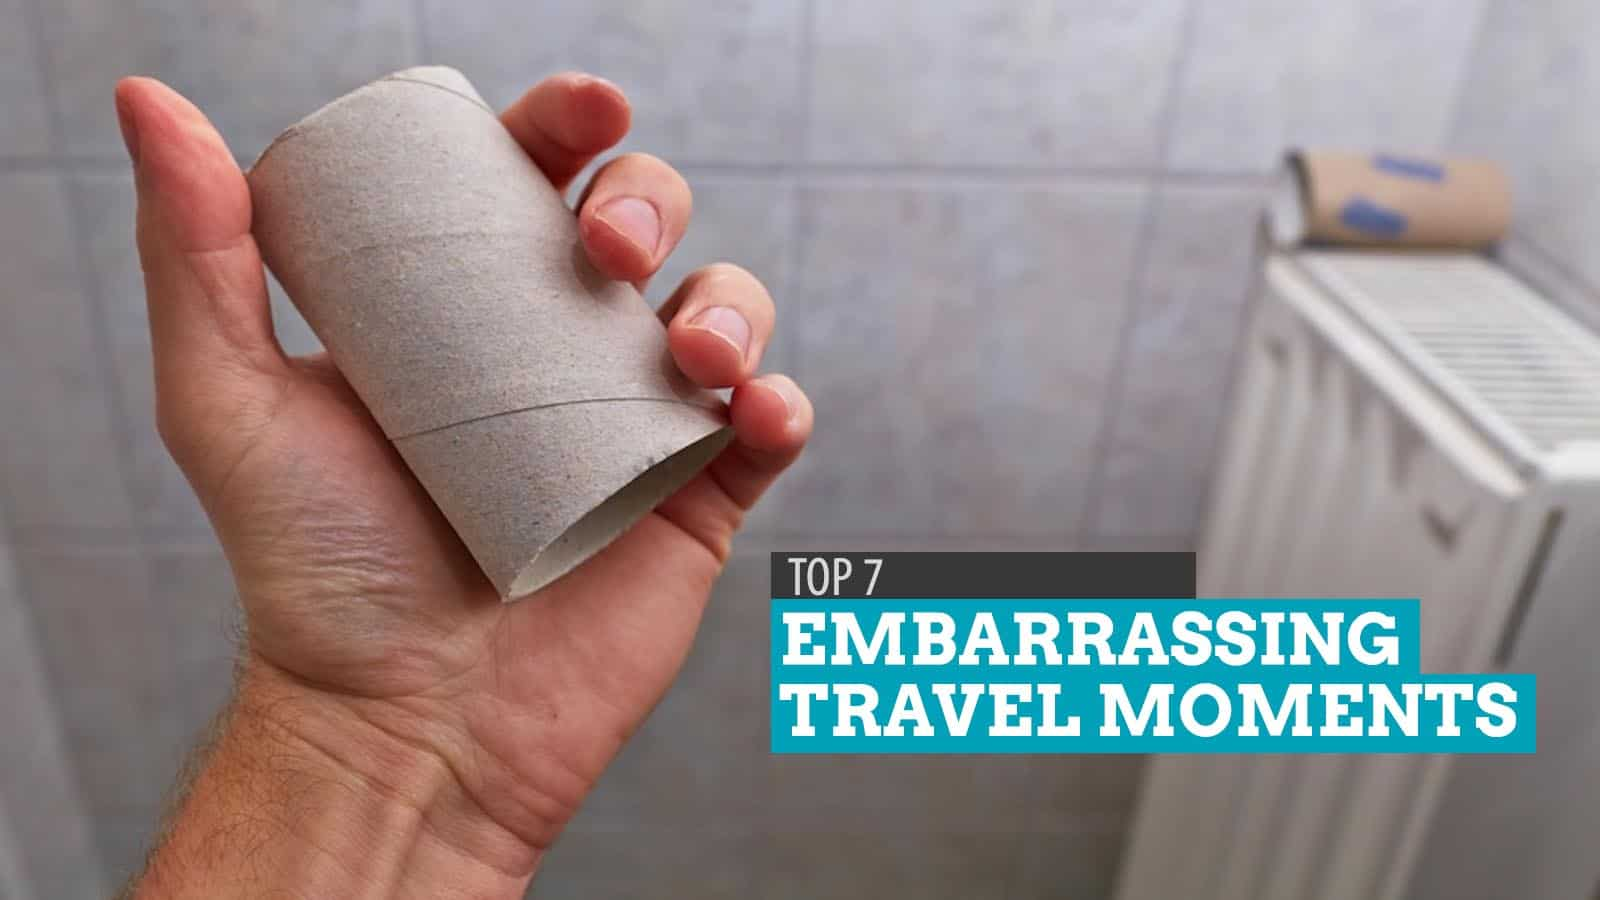 Top 7 Embarrassing Moments to Avoid When Traveling